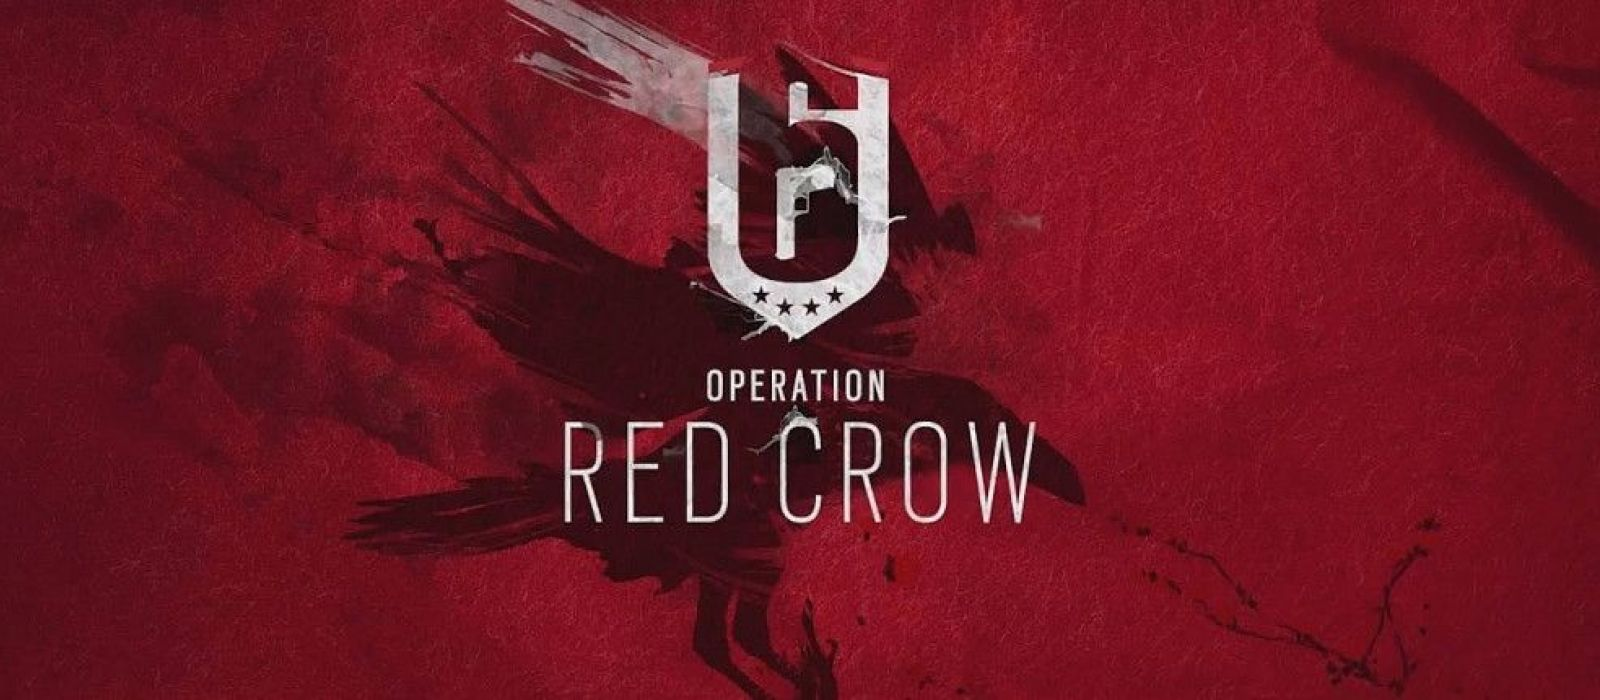 Объявлена дата выхода дополнения Operation Red Crow для Rainbow Six Siege